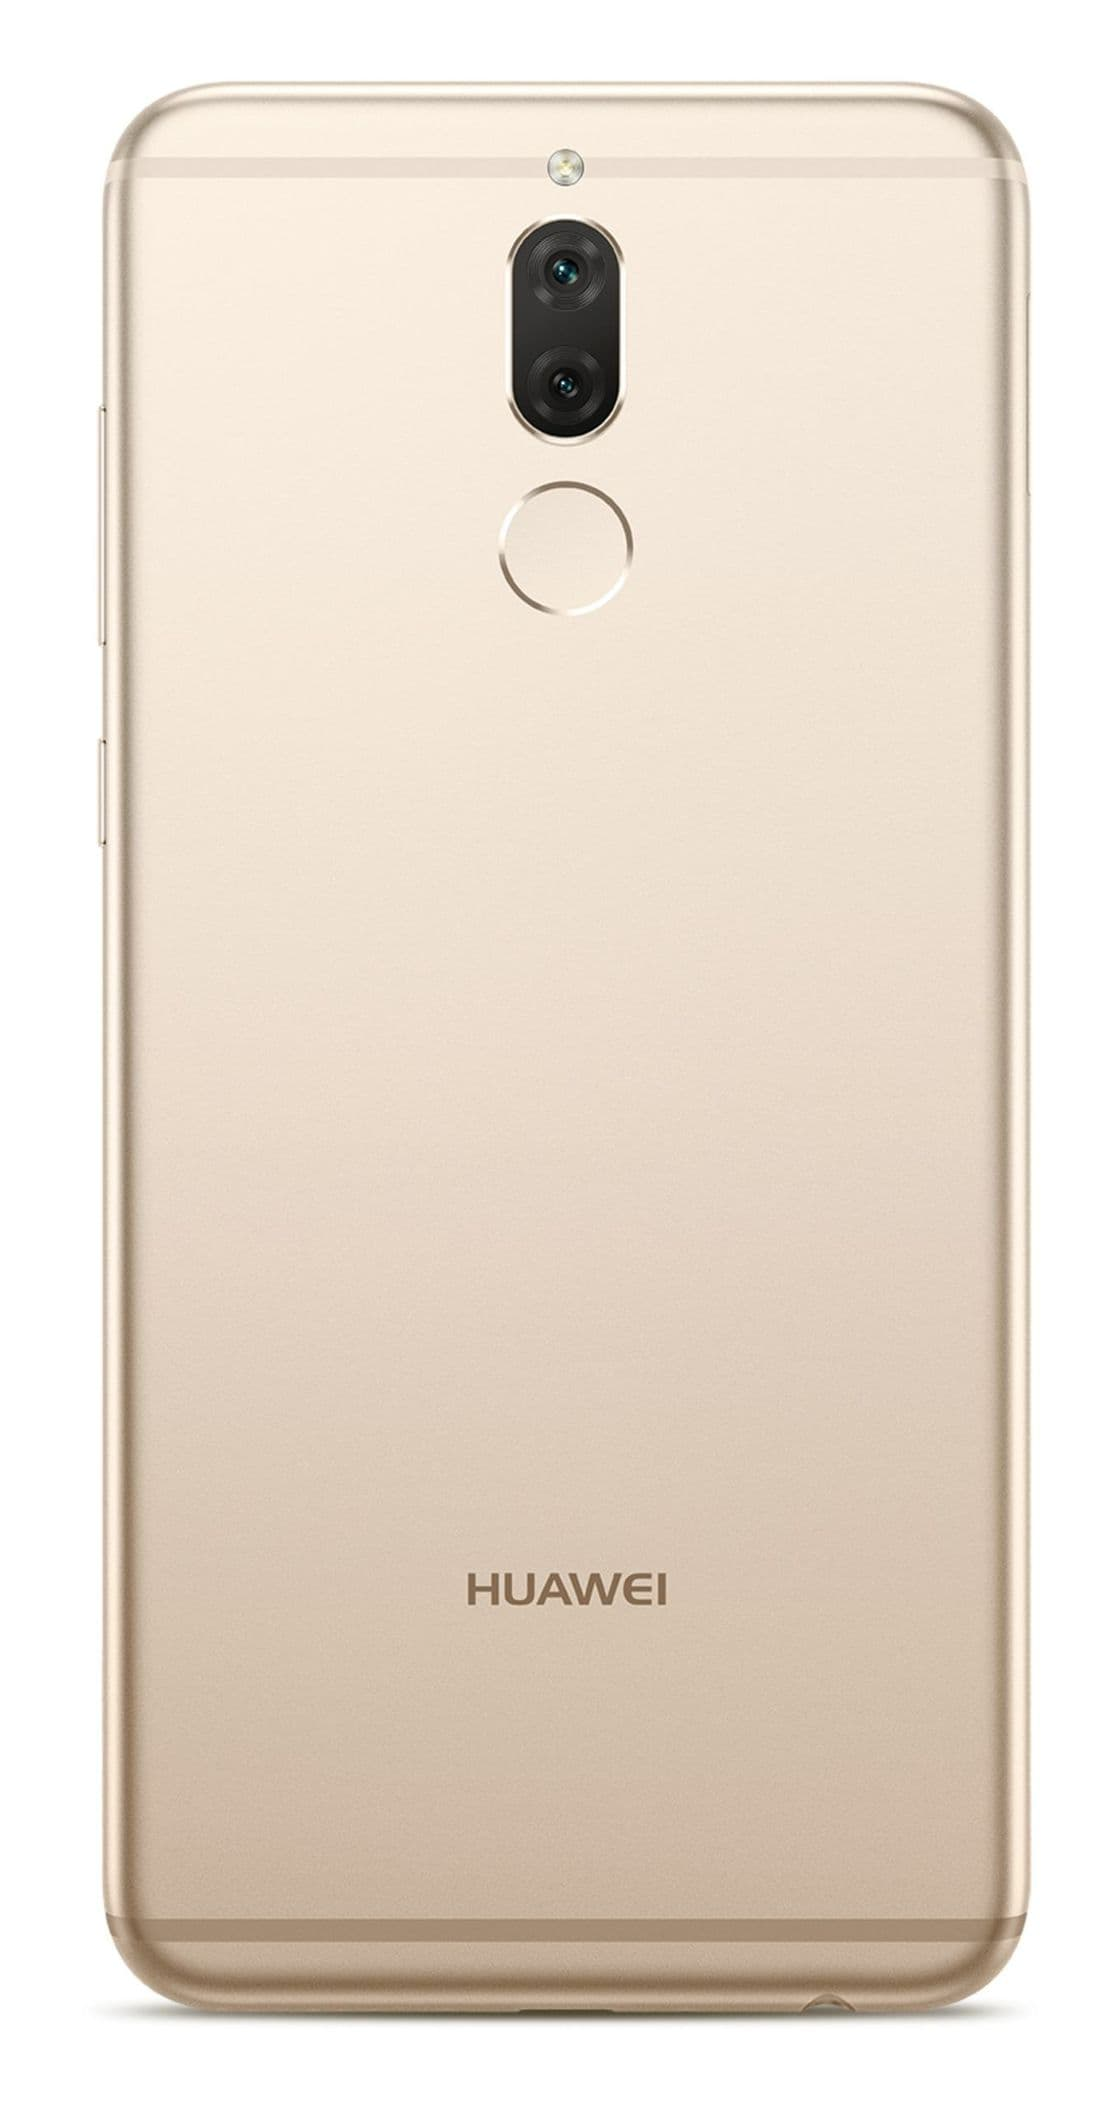 Huawei Mate 10 Lite buy smartphone, compare prices in ...